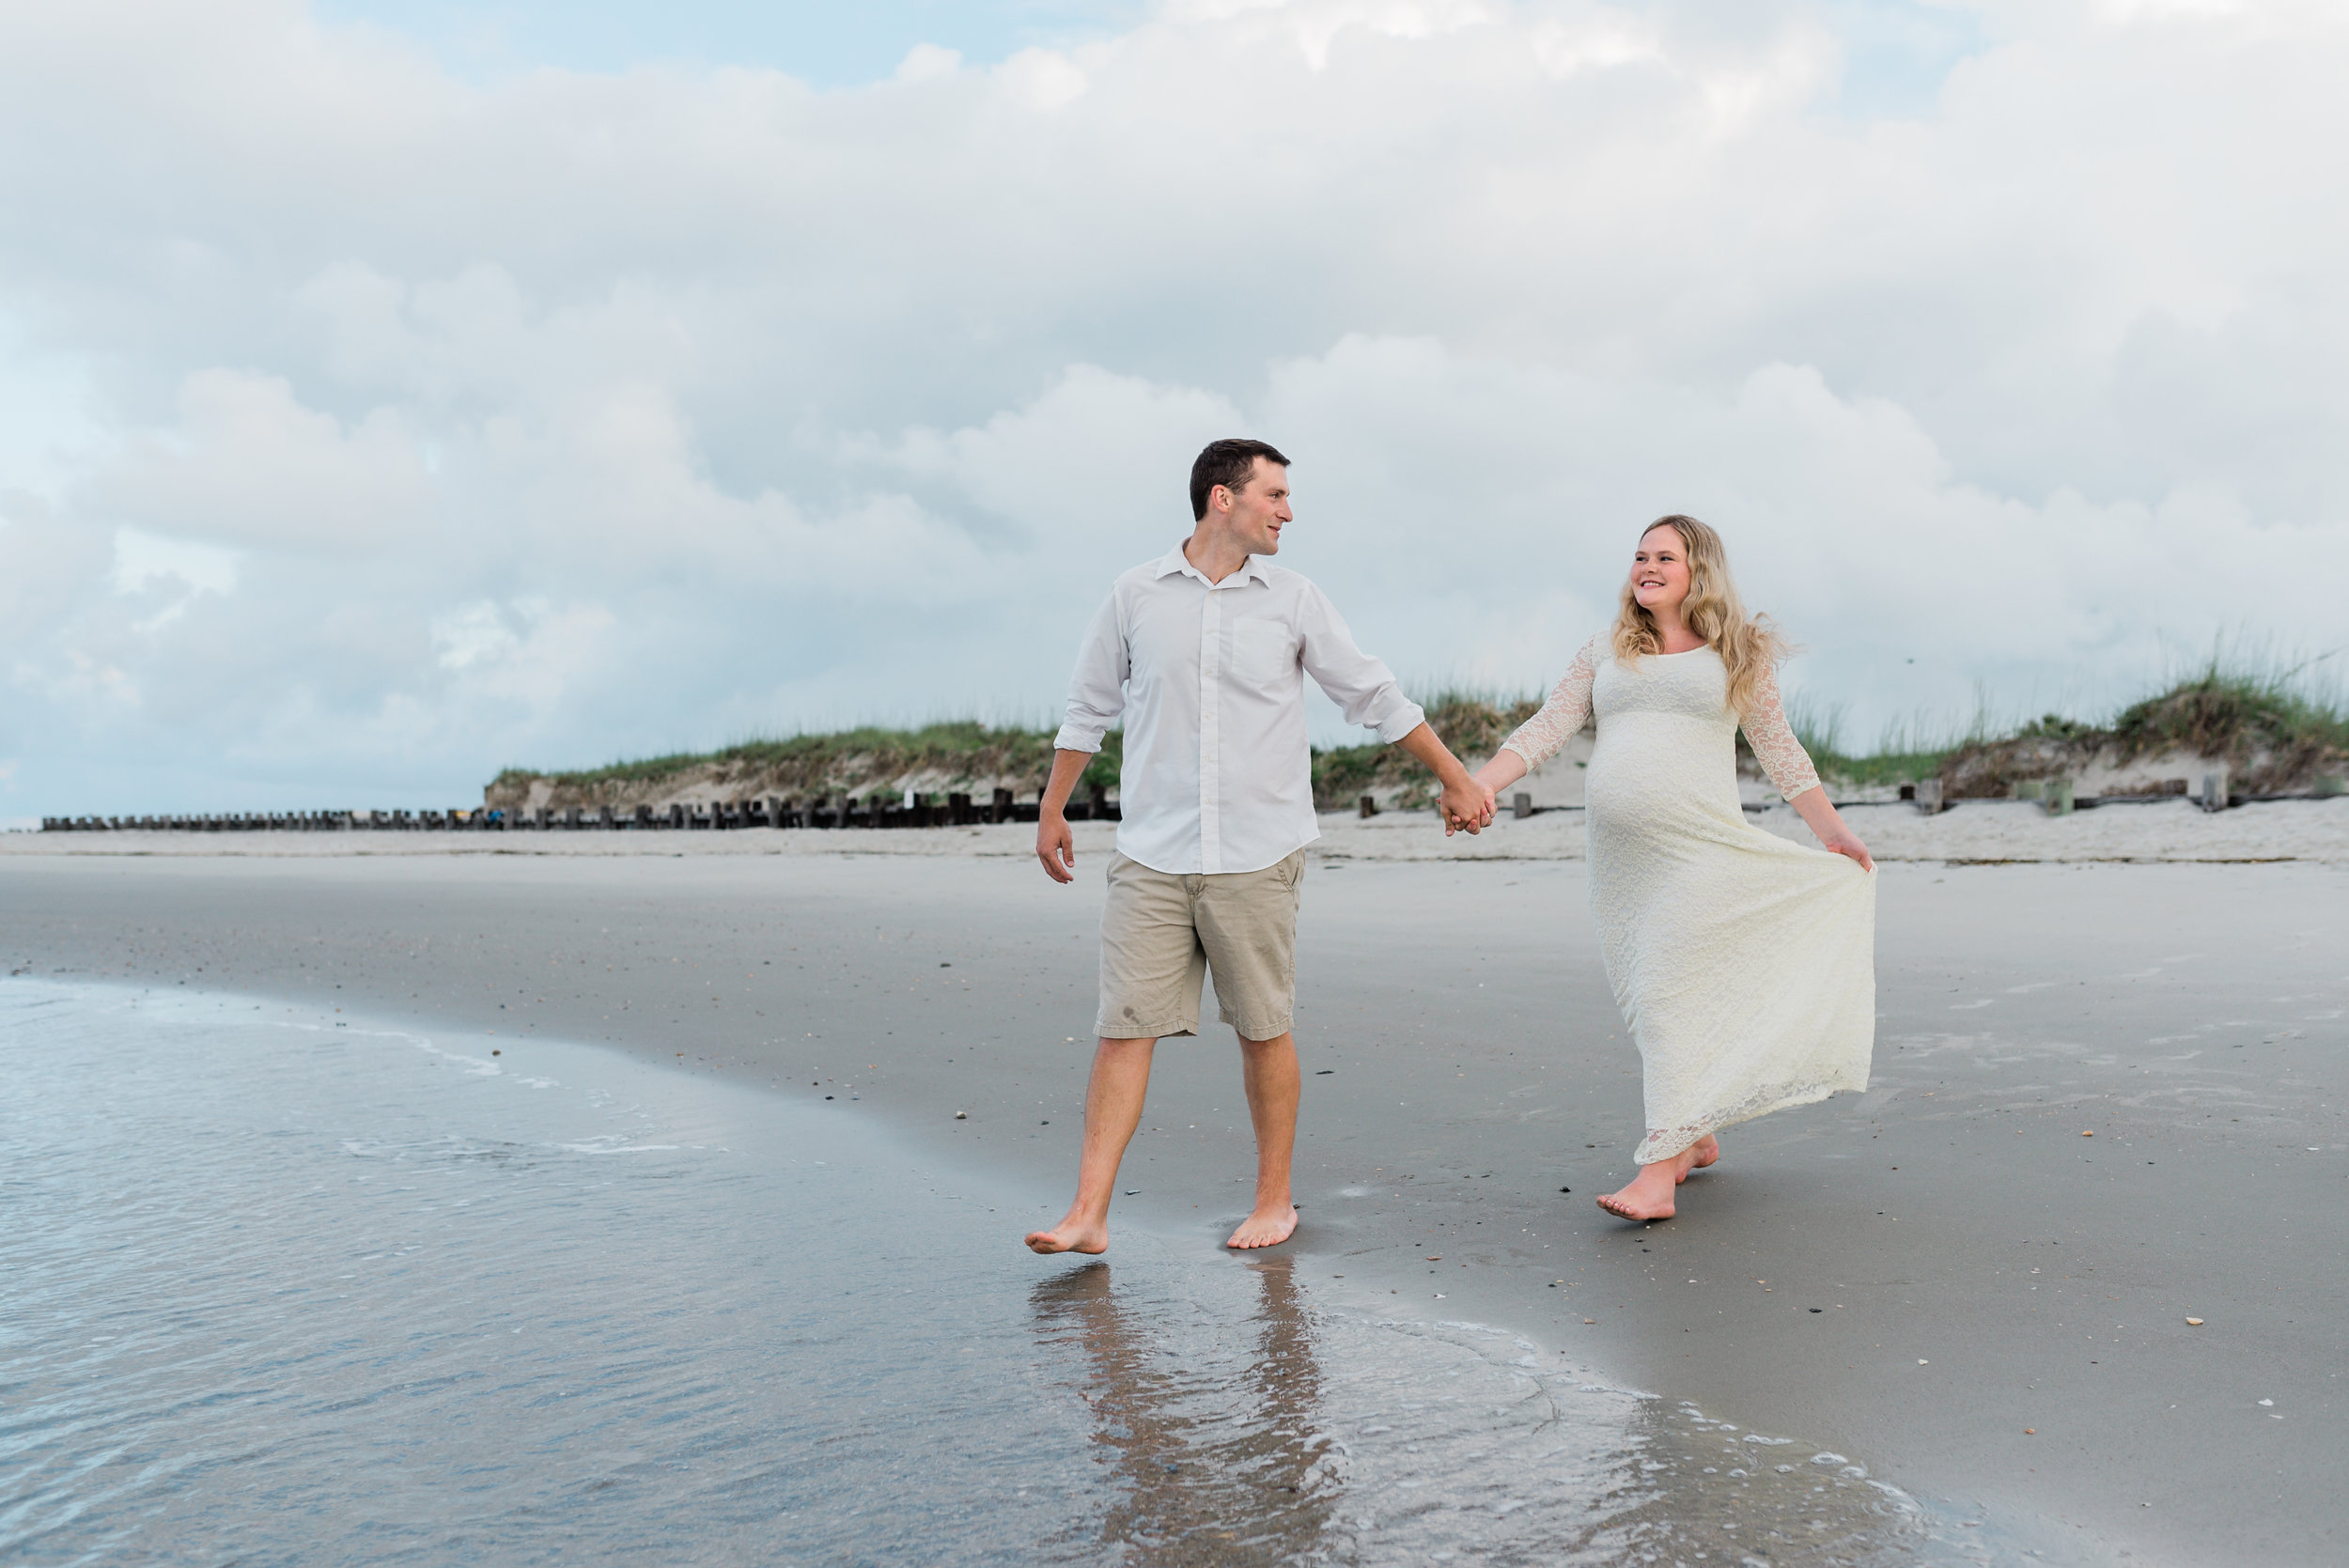 Folly-Beach-Maternity-Photographer-Following-Seas-Photography-6623 copy.jpg